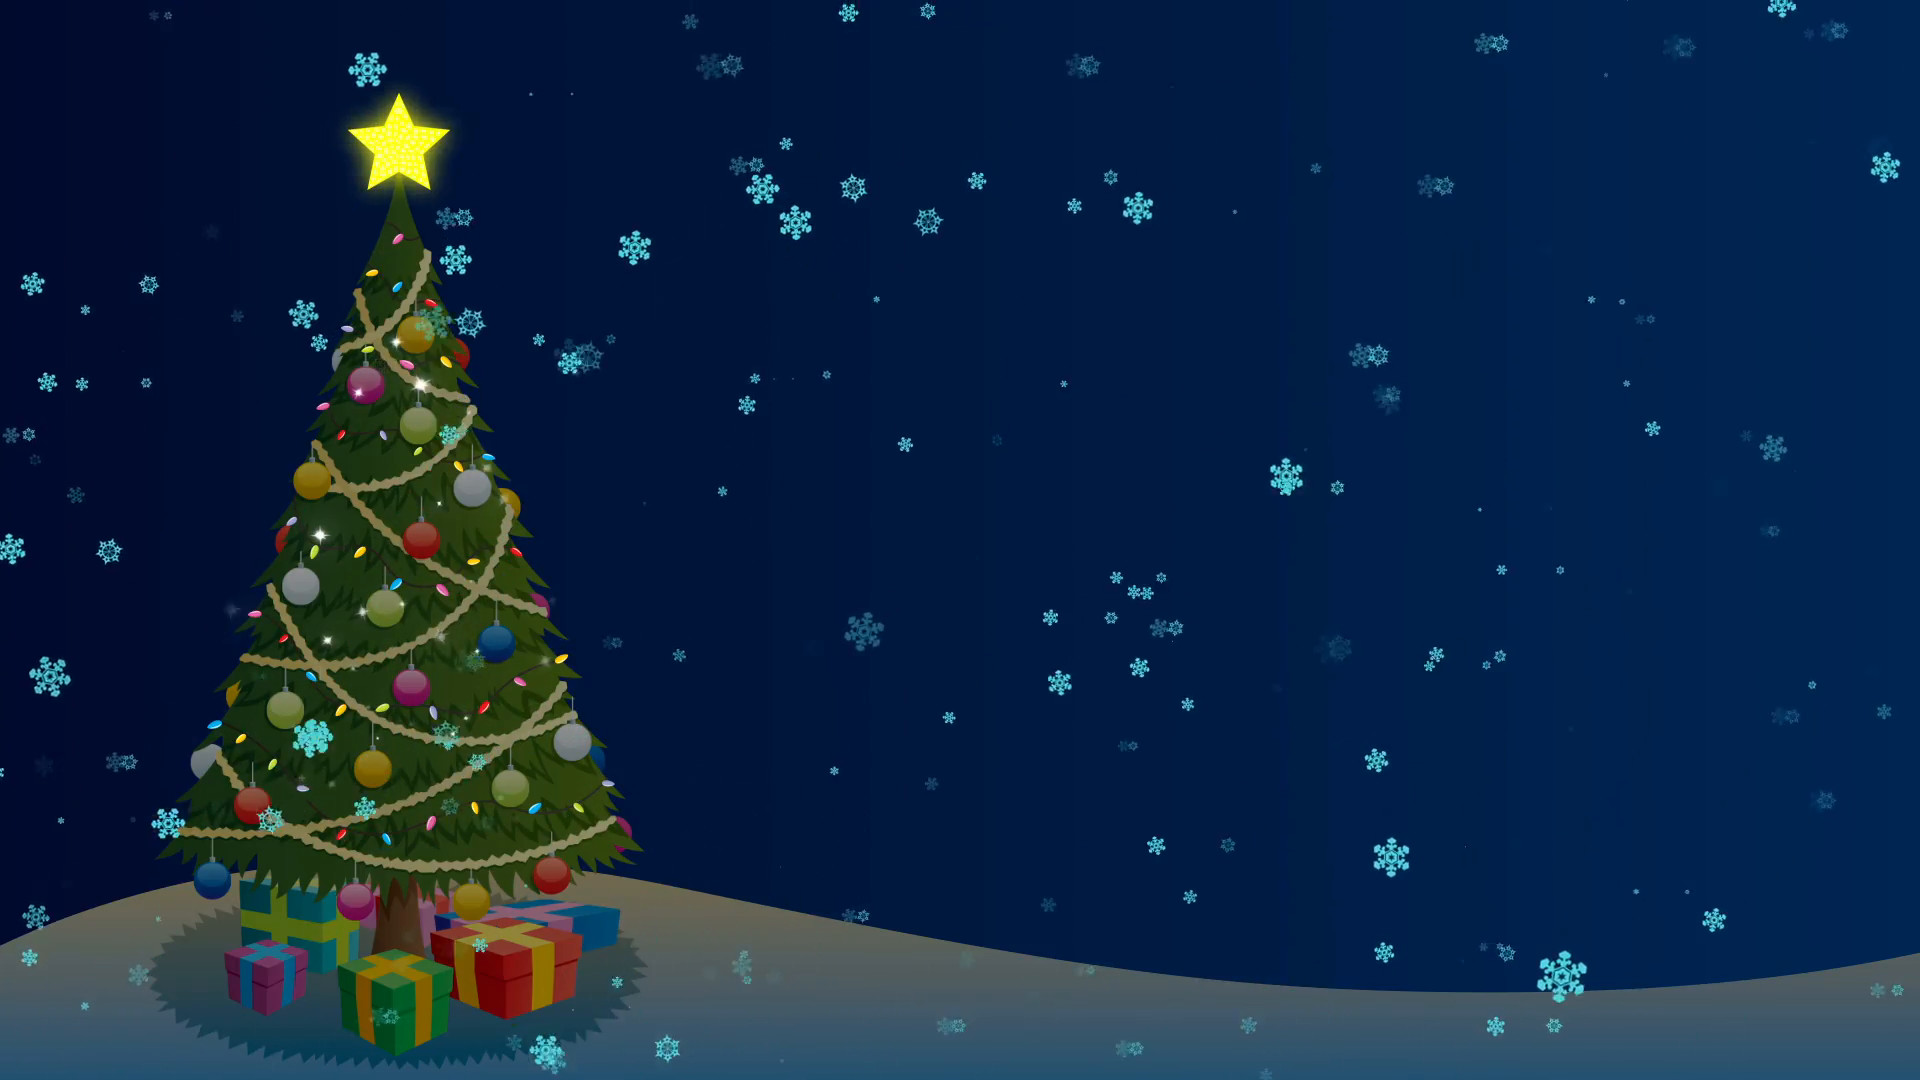 Supreme Wallpaper Girl Cartoon Snowy Christmas Backgrounds 48 Images